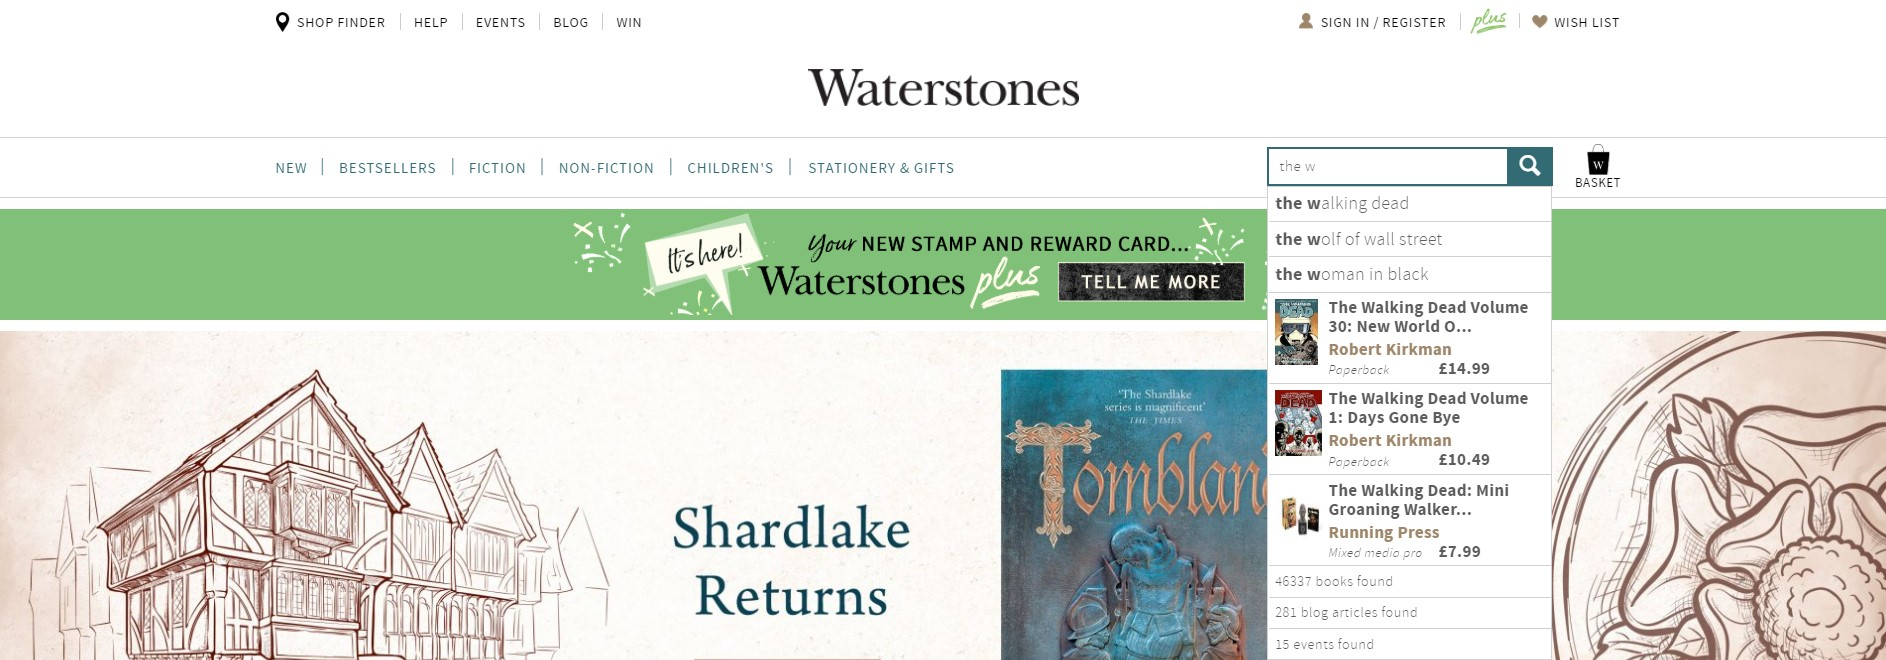 Waterstones-site-search